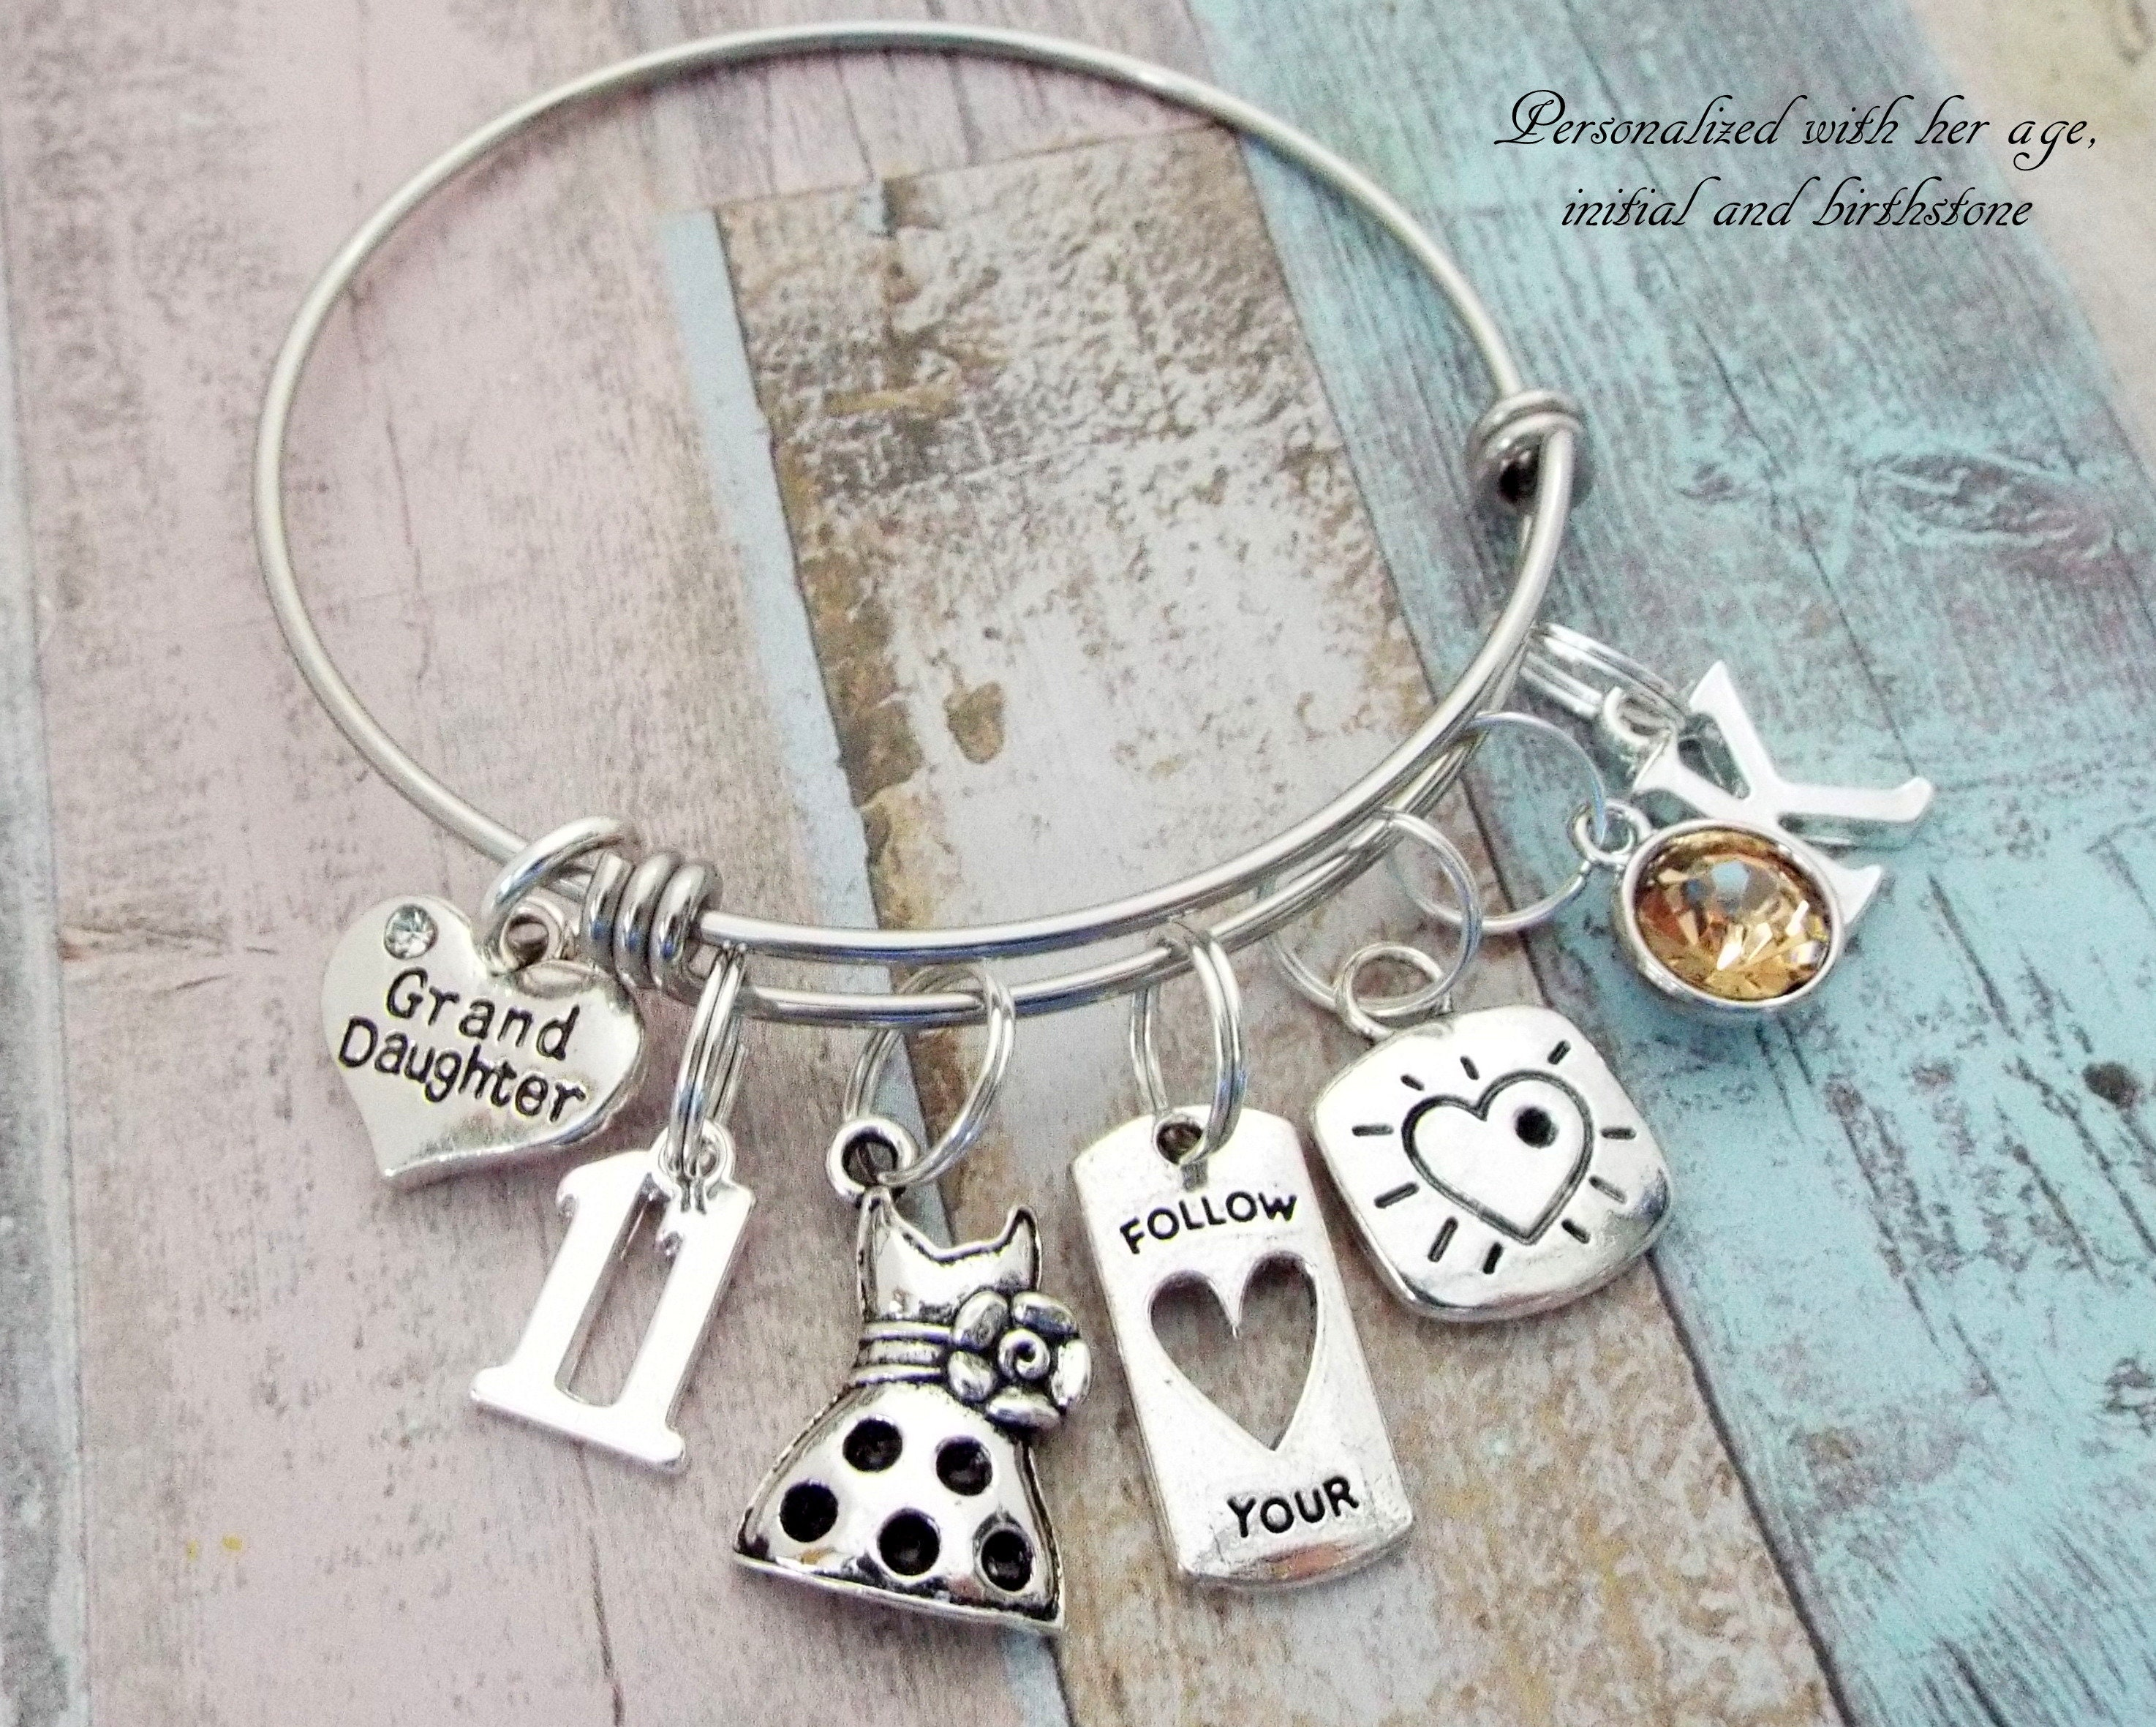 Girl Birthday Charm Bracelet 11th Gift Daughter Jewelry Personalized For Her 11 Year Old Niece